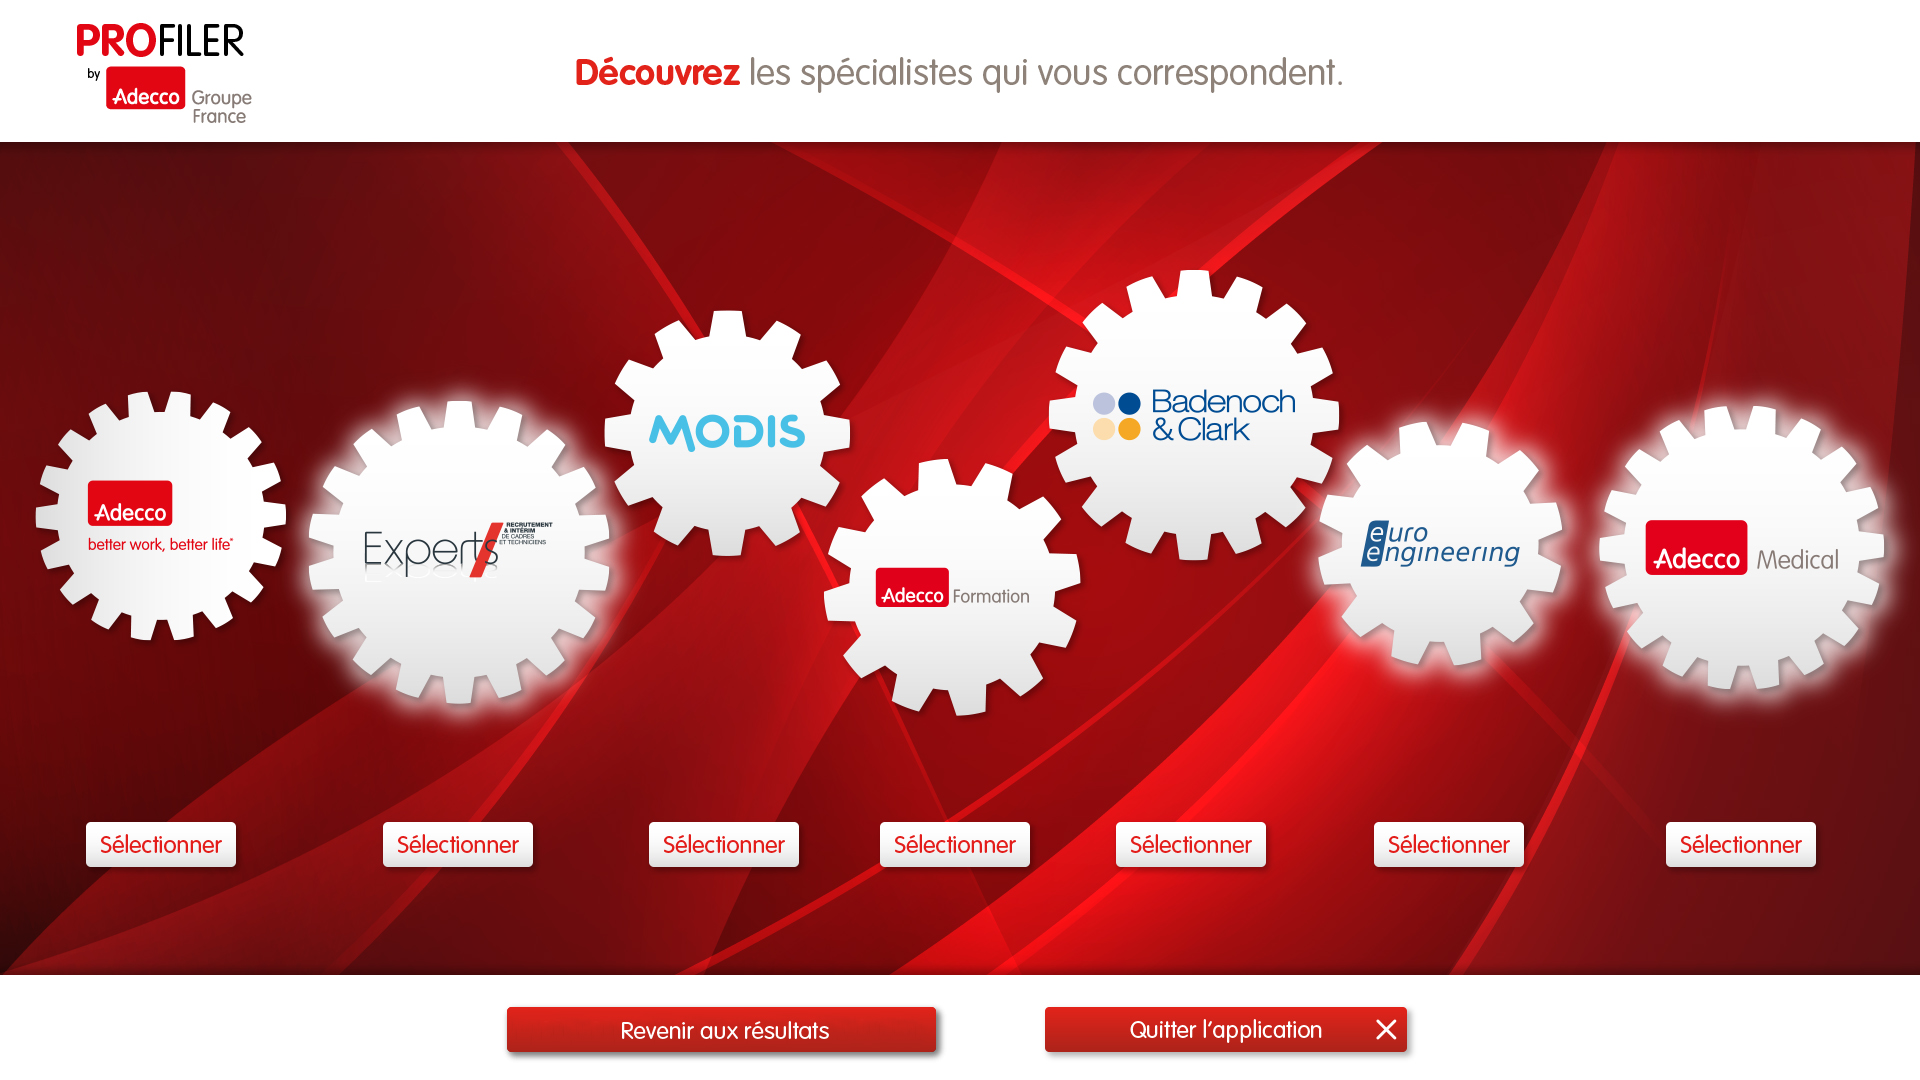 etude de cas application tactile et adecco application tactile multitouch adecco